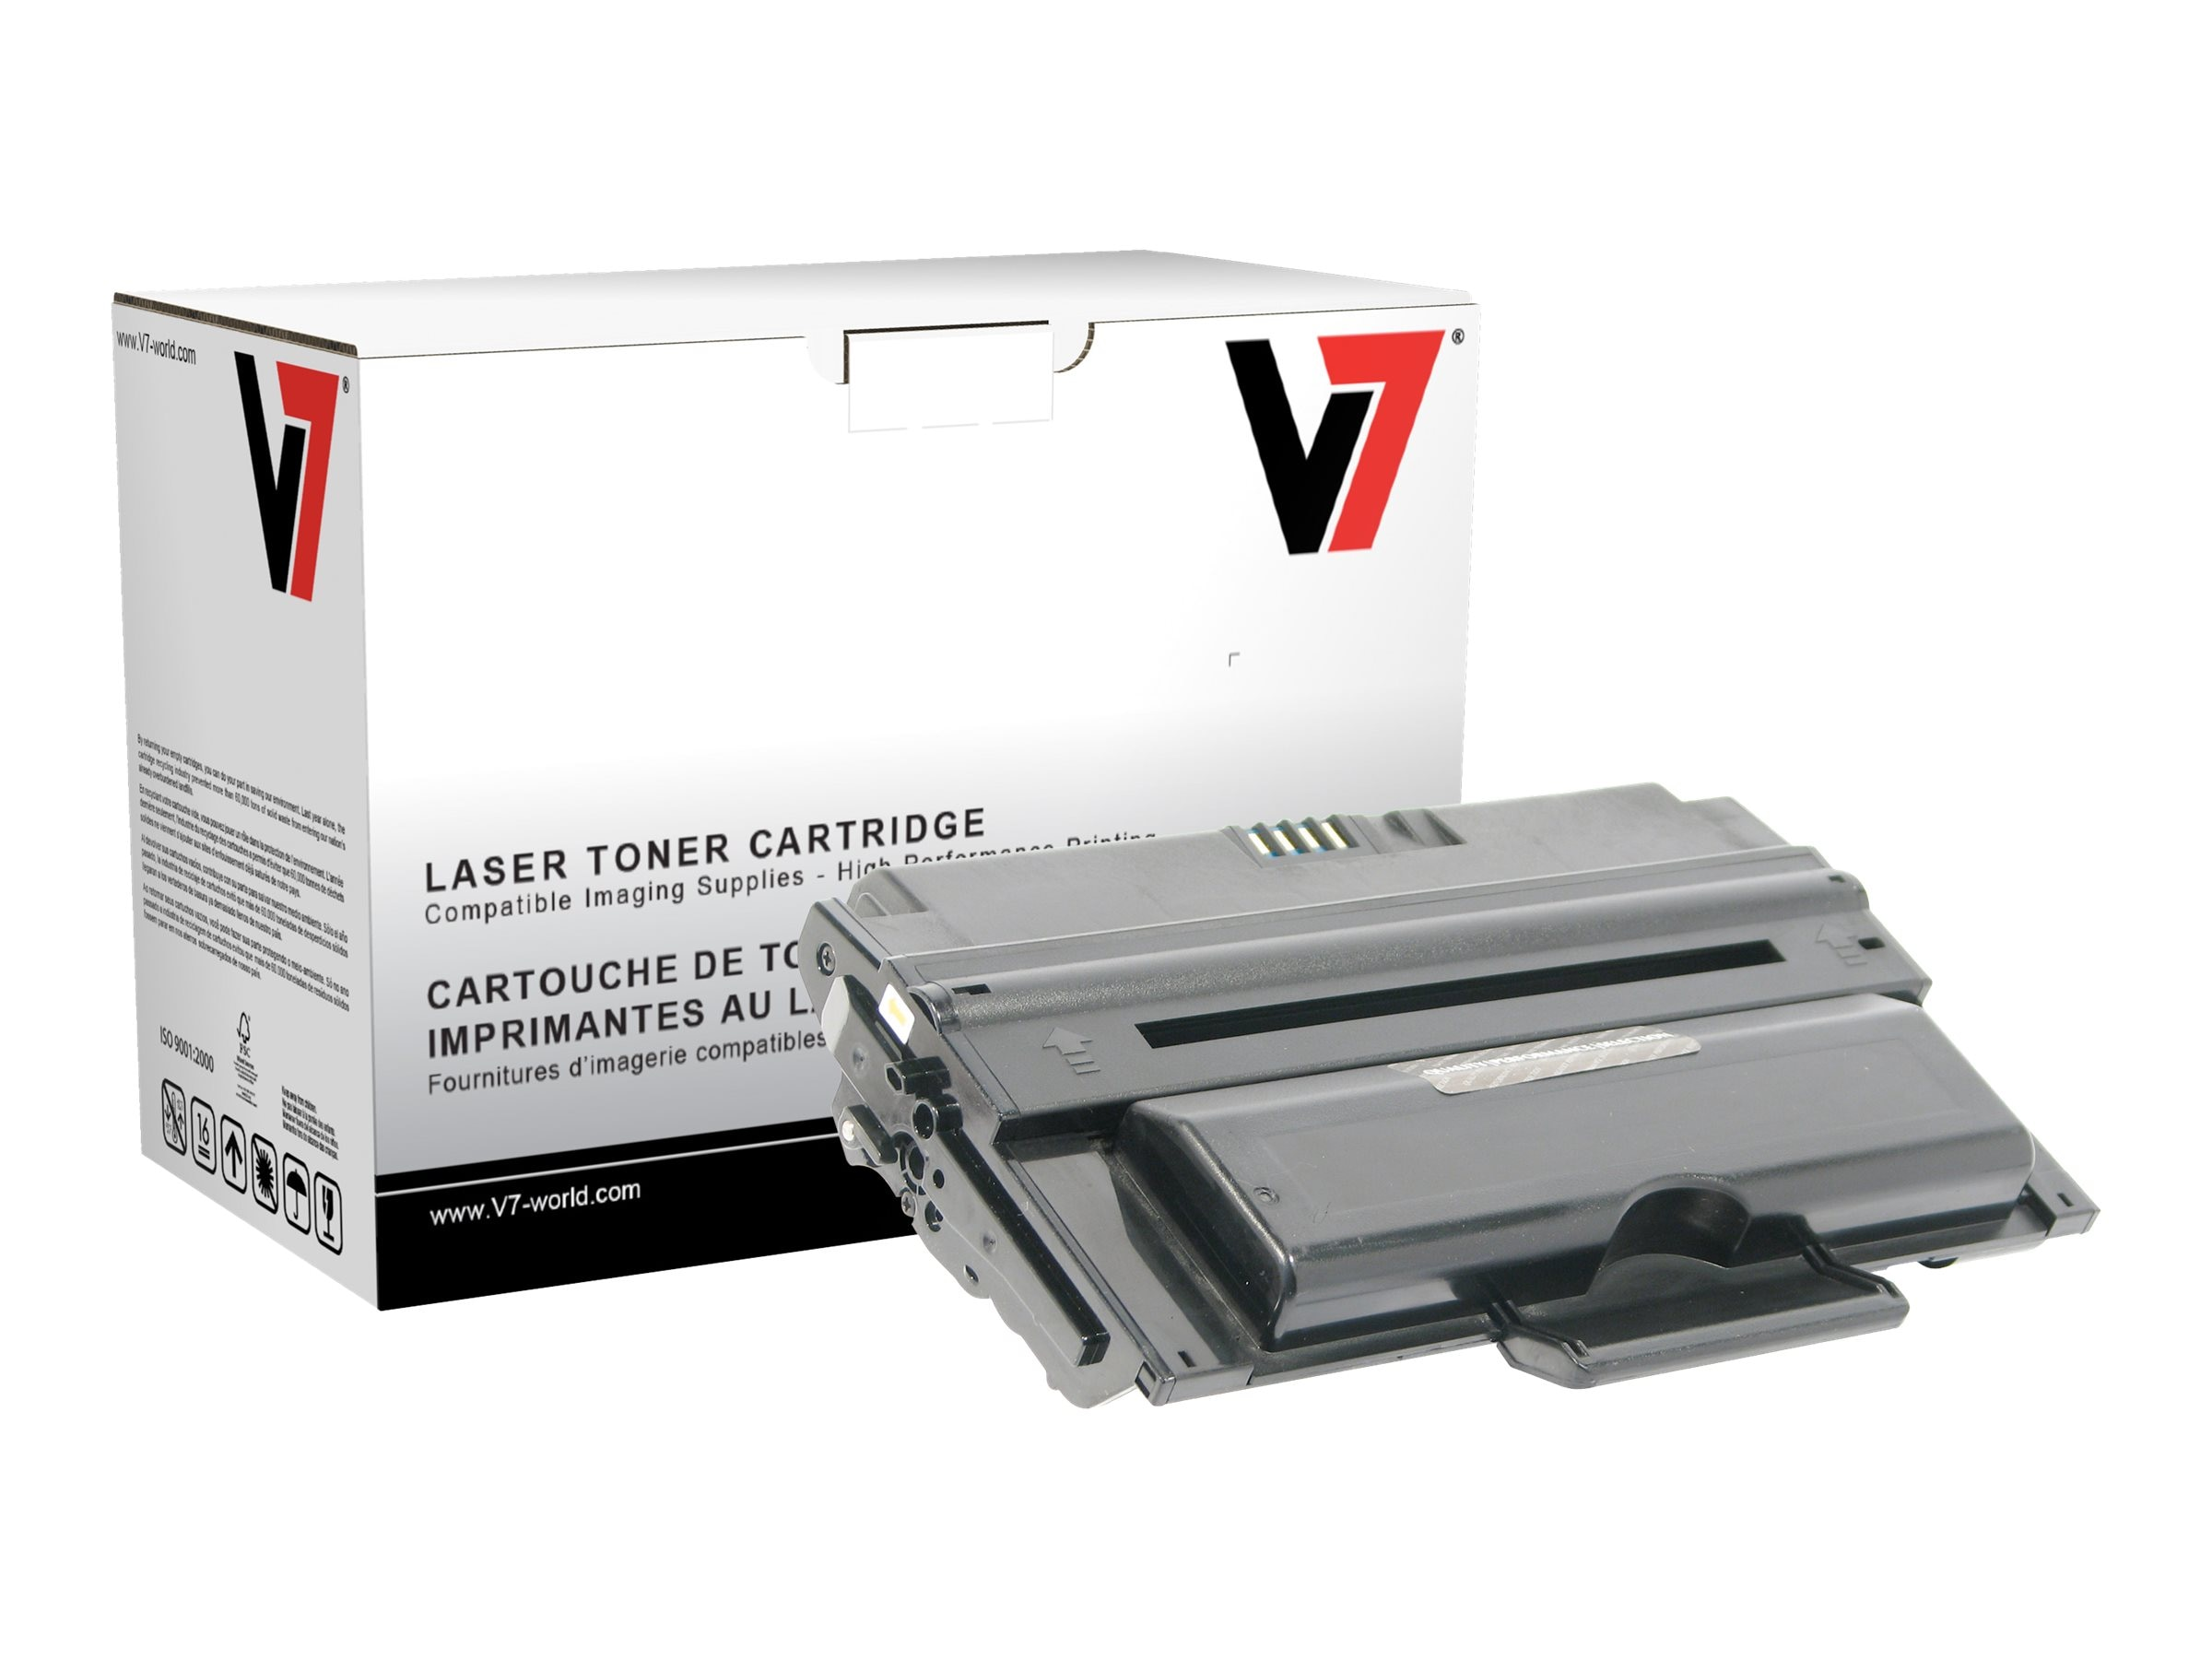 V7 330-2209 Black High Yield Toner Cartridge for Dell 2335dn Printer (TAA Compliant)